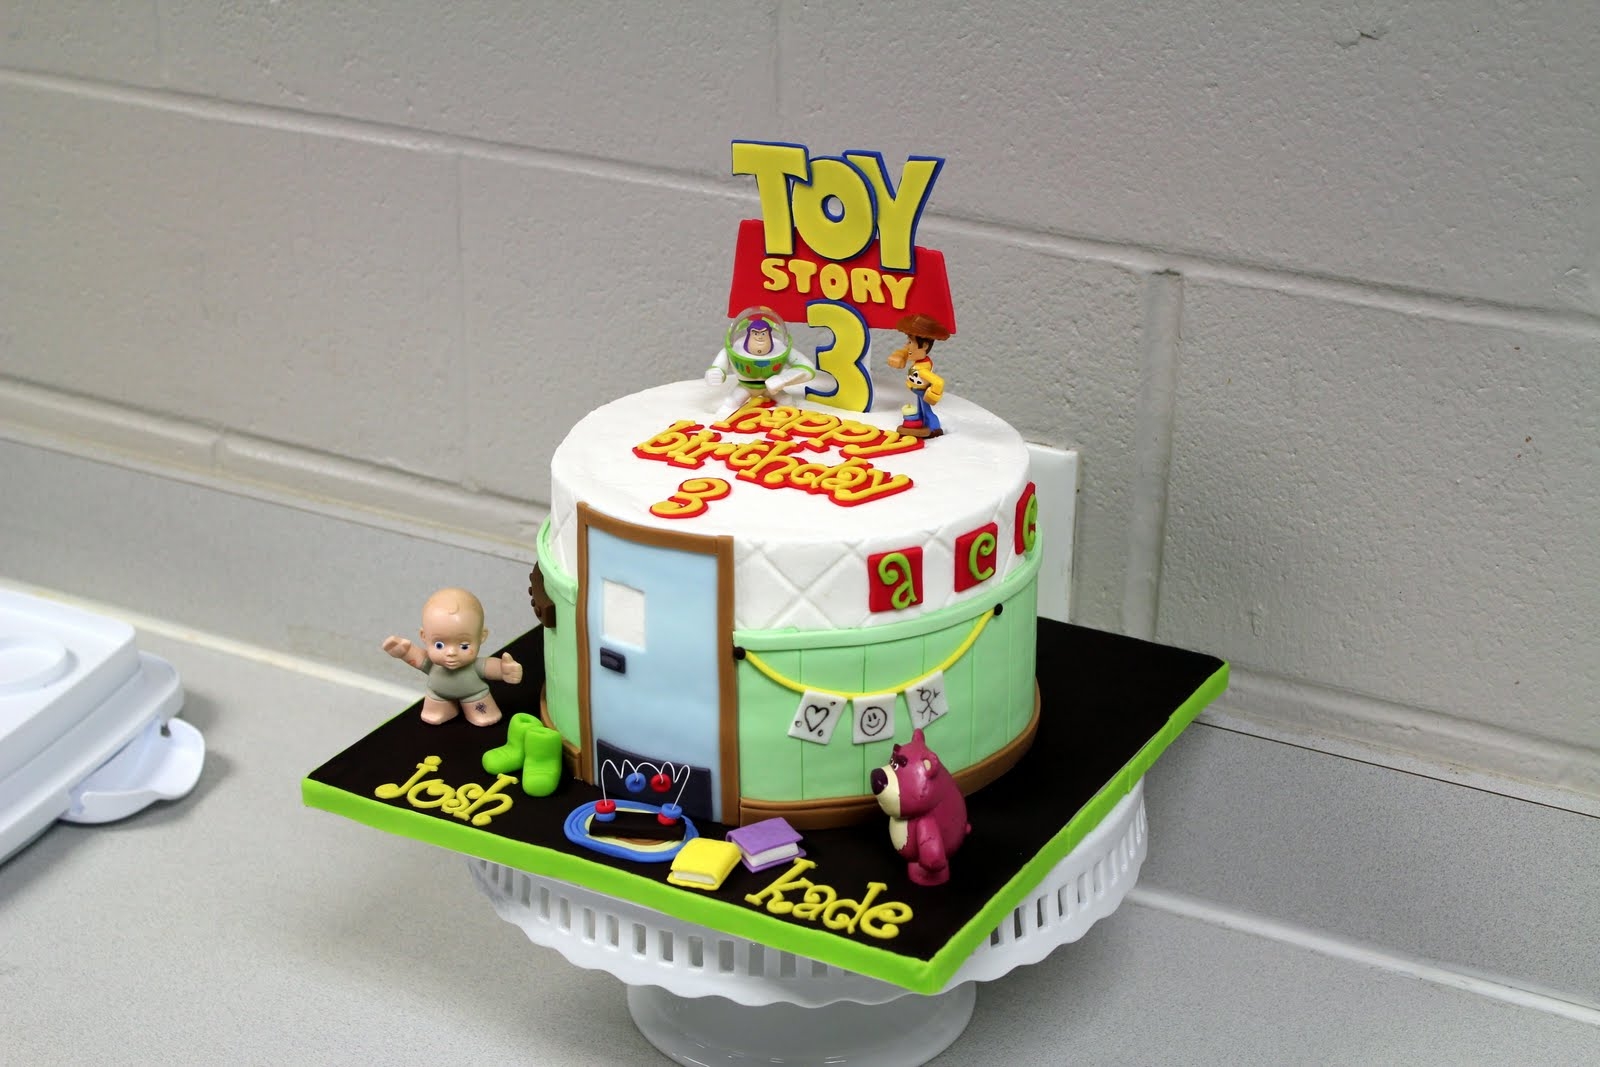 Crumbs Yums Toy Story 3 Birthday Party